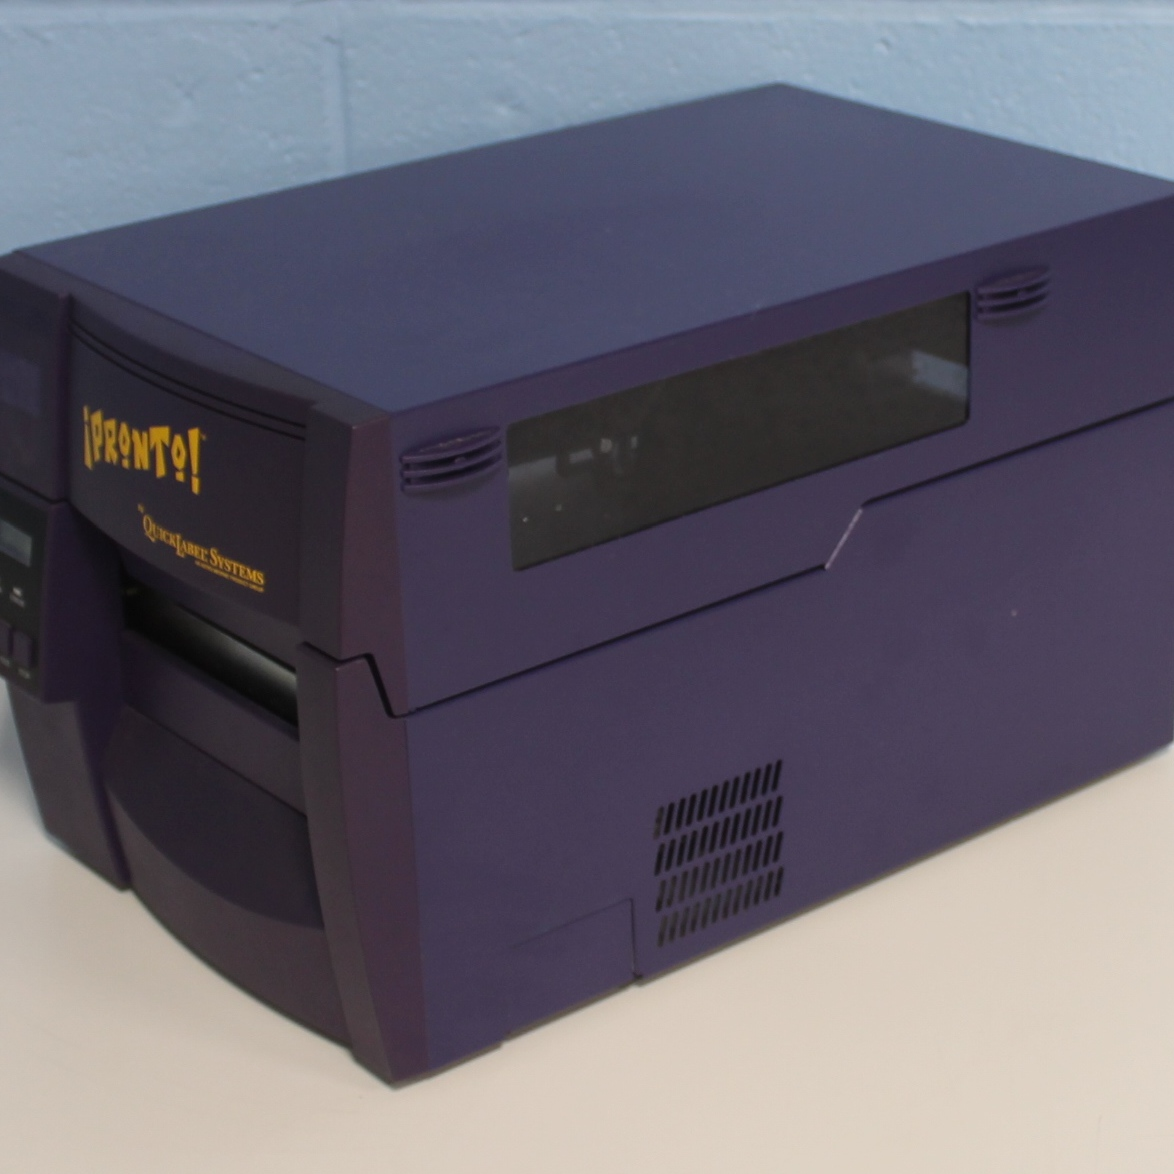 QuickLabel Systems Pronto 474 Label Printer Image